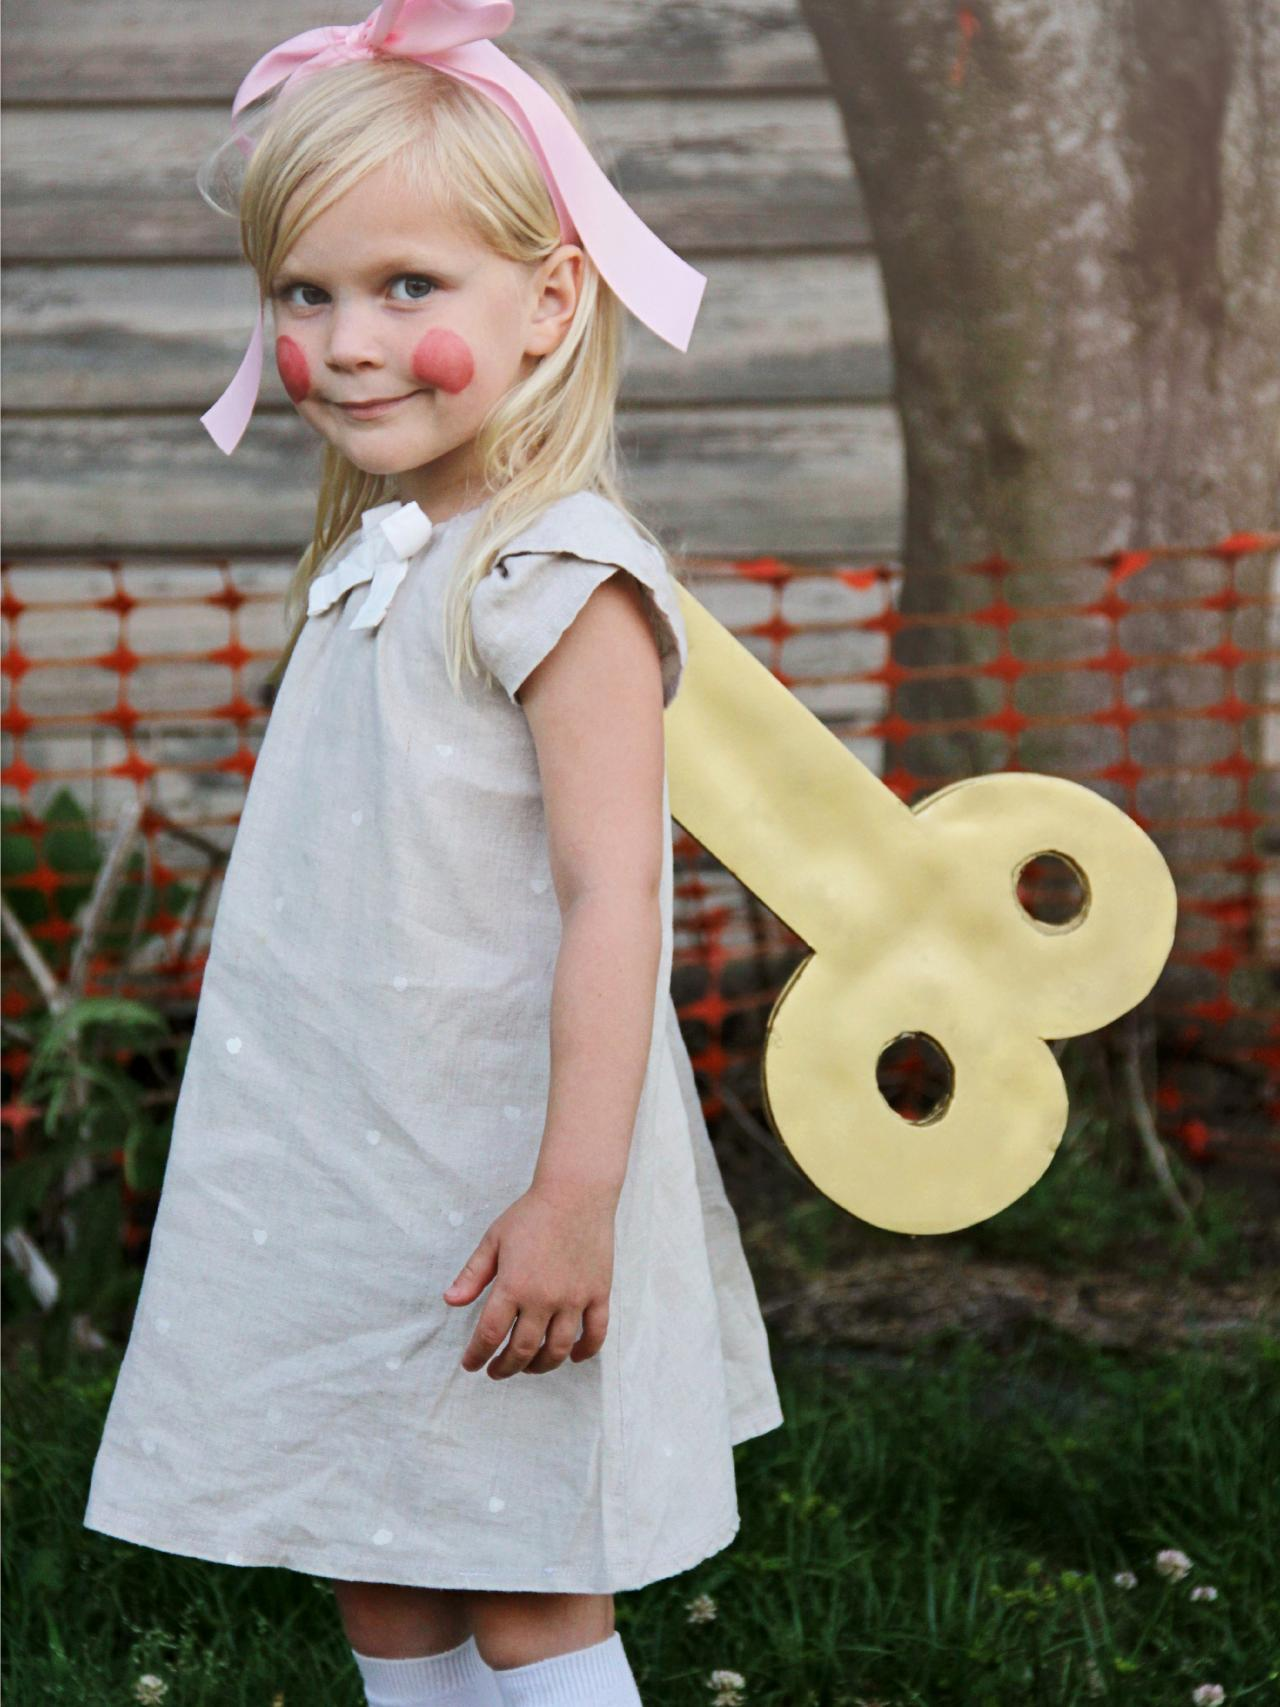 How To Make A DIY Toy Doll Halloween Costume For Kids